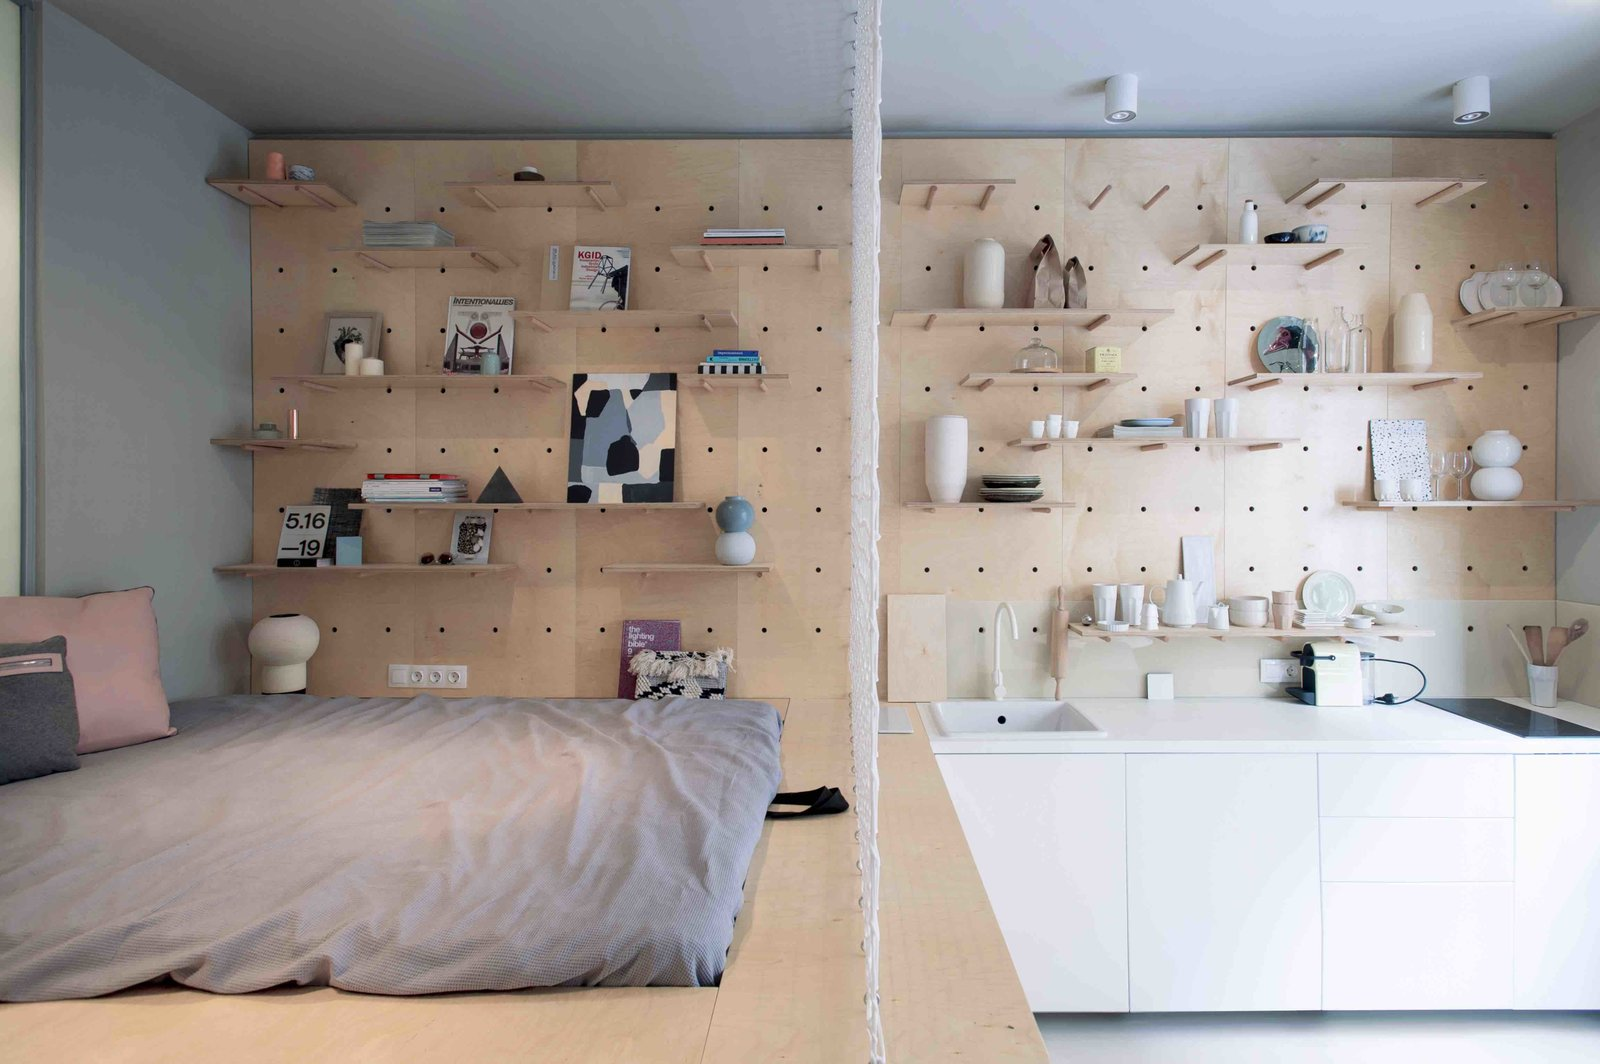 Budapest design studio POSITION Collective employs clever storage solutions, including a wardrobe rack, modular walls, and a storage-filled bed, in order to maximize functional space.  Though the 323-square-foot studio is now being leased out on a long-term basis, the clients had originally wanted to turn the small apartment into a stylish and memorable space for design-loving travelers visiting Budapest. Tagged: Bedroom, Bed, Storage, Ceiling Lighting, and Shelves.  Best Photos from 3 Smart Storage Systems Maximize Space in a Tiny Studio Apartment in Budapest